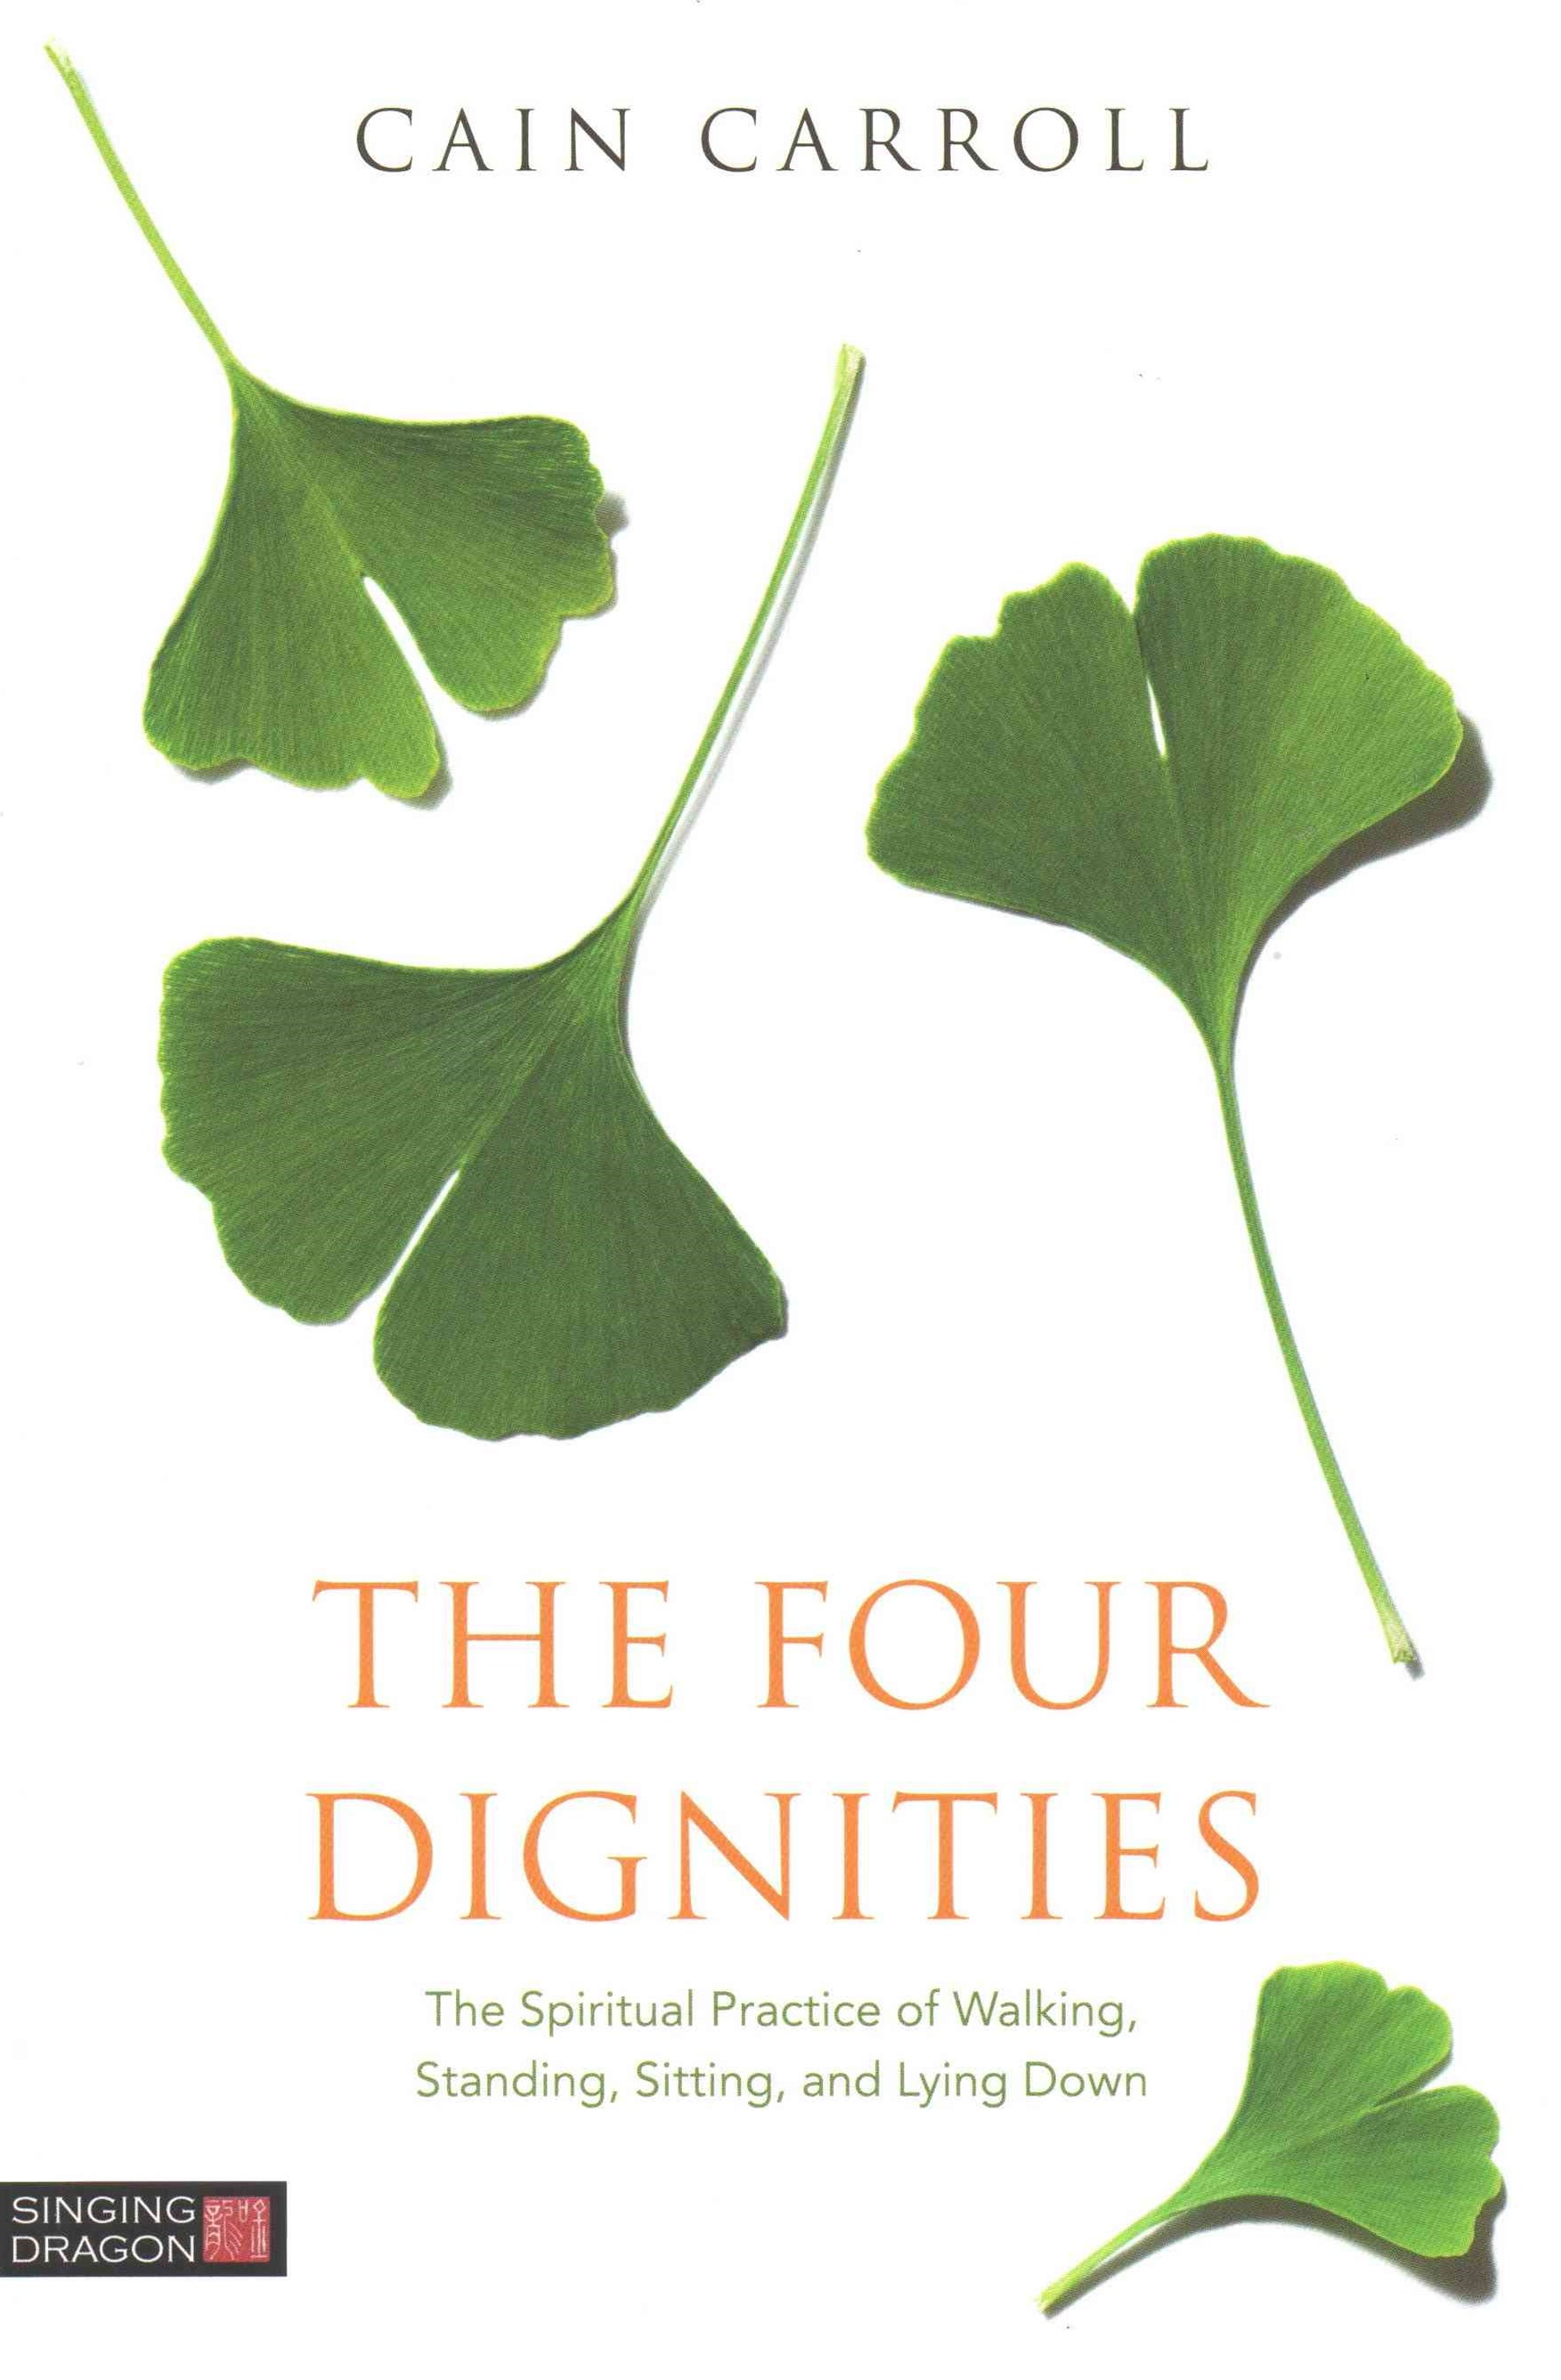 The Four Dignities